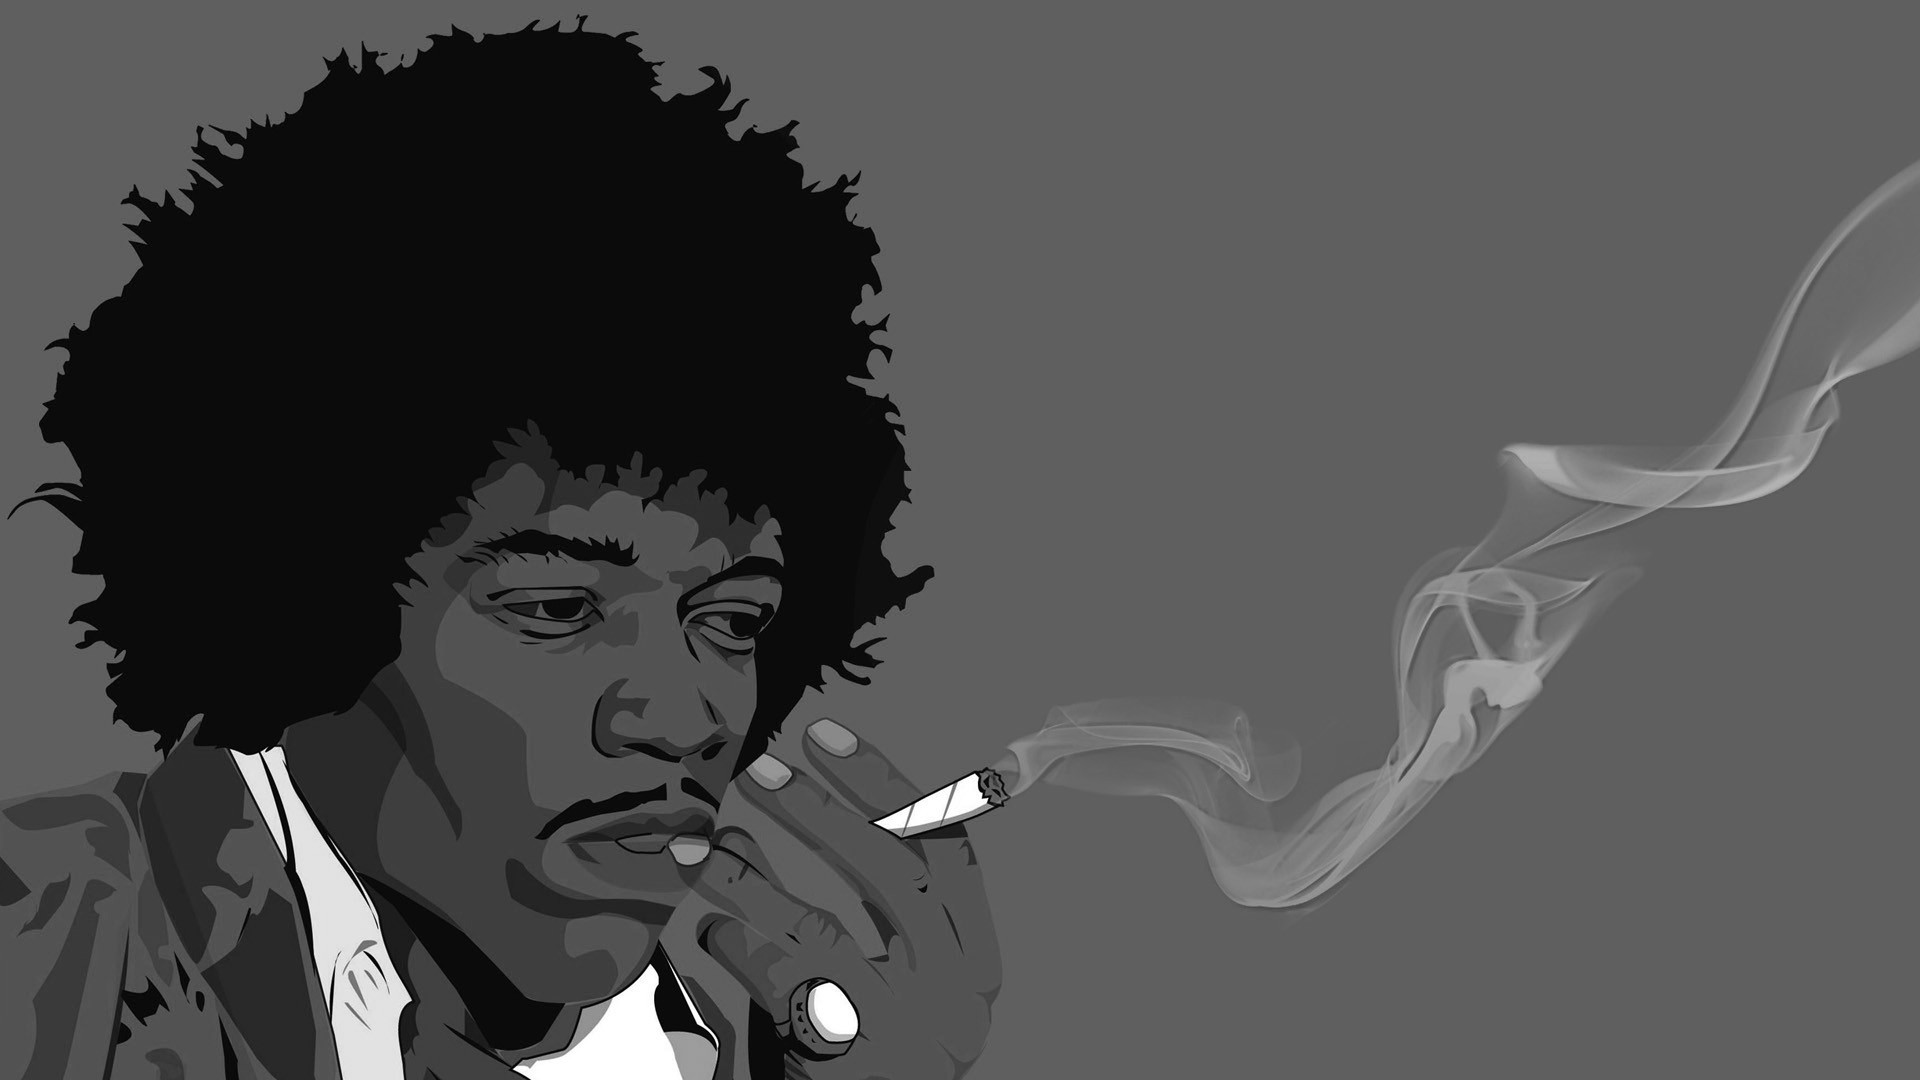 Download Wallpaper 3840x2160 Jimi hendrix, Virtuoso guitarist ...